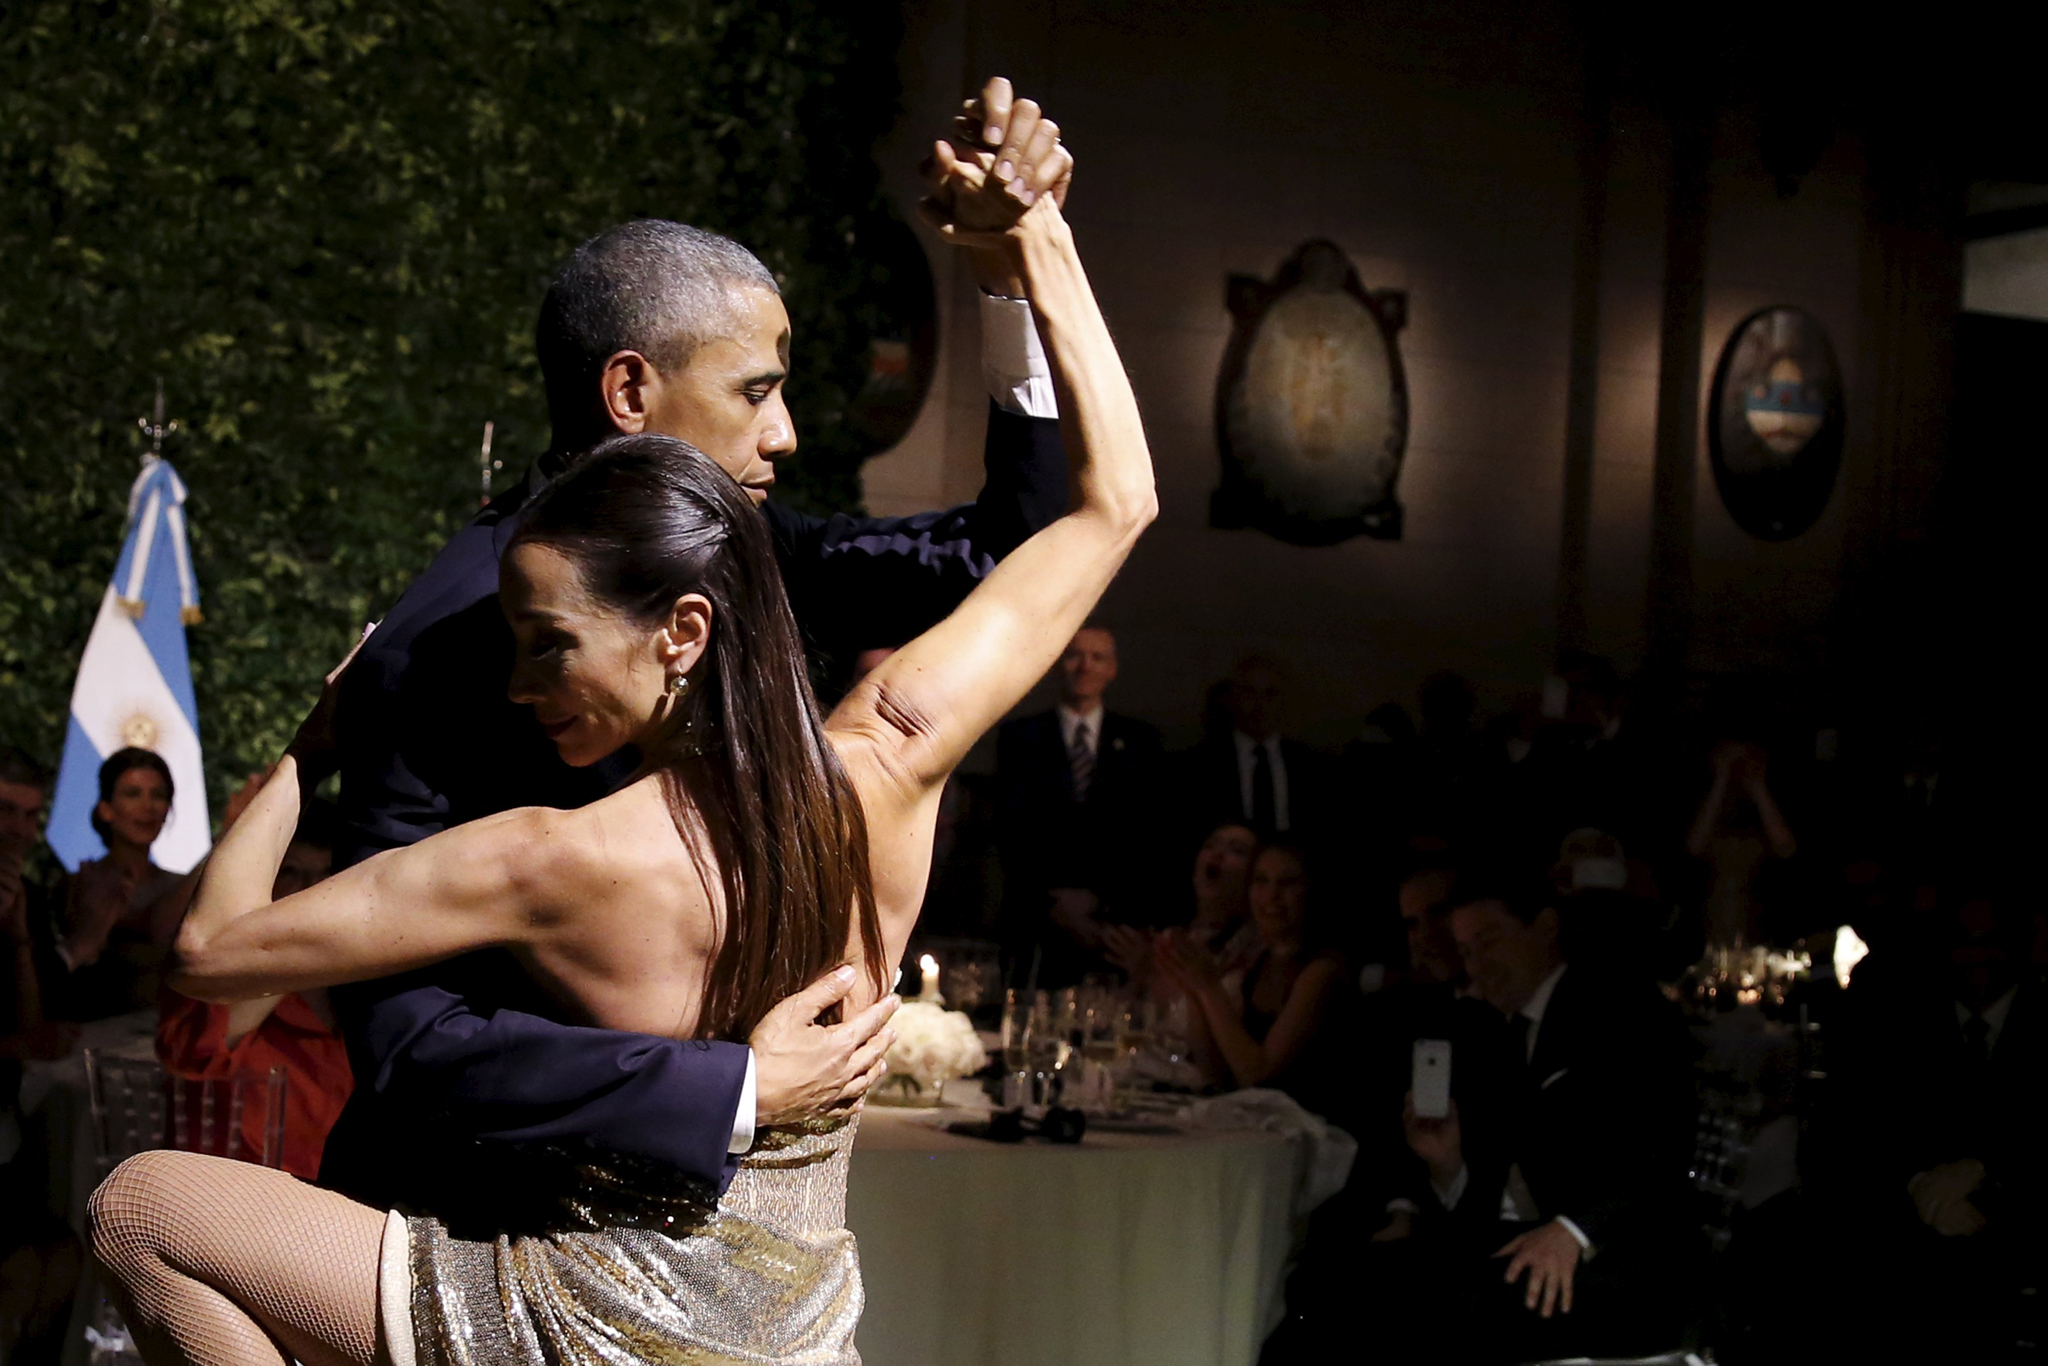 U.S. President Barack Obama dances tango during a state dinner hosted by Argentina's President Mauricio Macri at the Centro Cultural Kirchner as part of President Obama's two-day visit to Argentina, in Buenos Aires